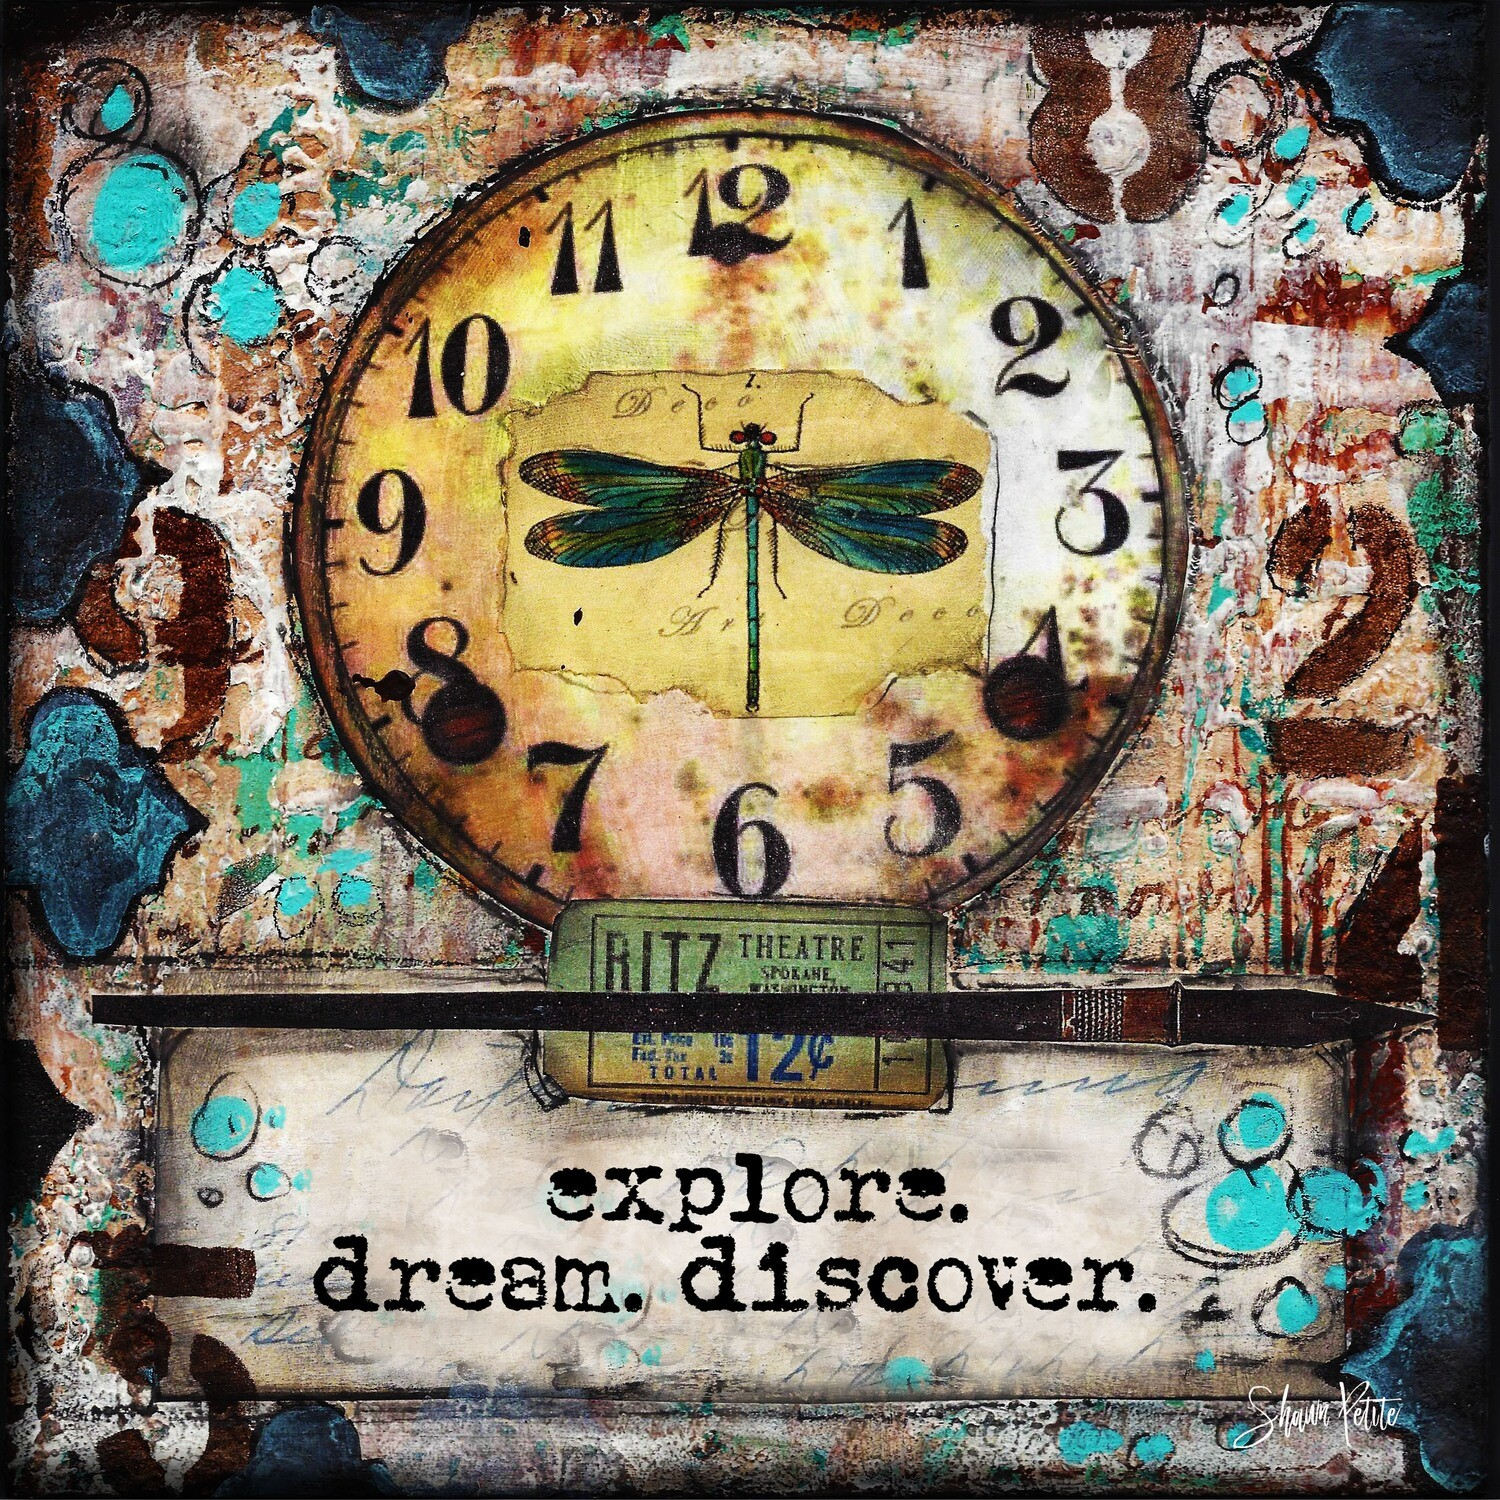 """Explore. dream. discover."" dragonfly Print on Wood 6x6 Overstock"